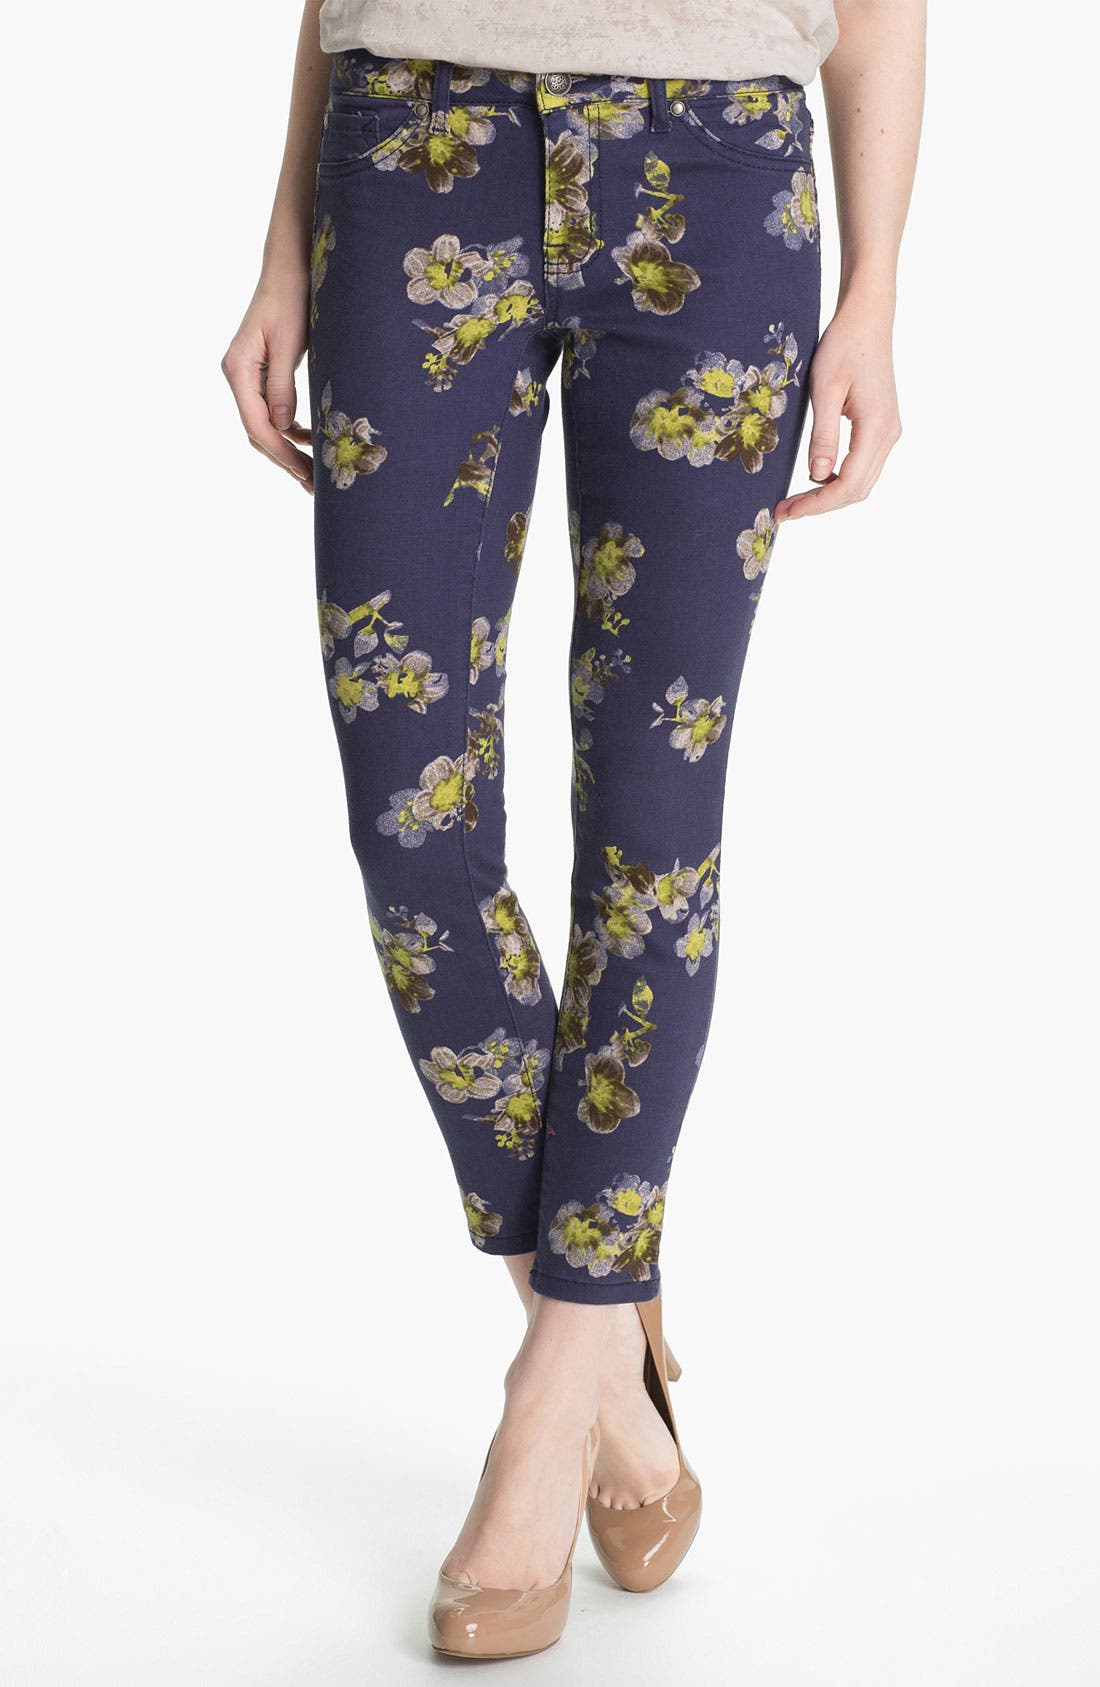 Alternate Image 1 Selected - Jessica Simpson Print Ankle Pants (Online Exclusive)